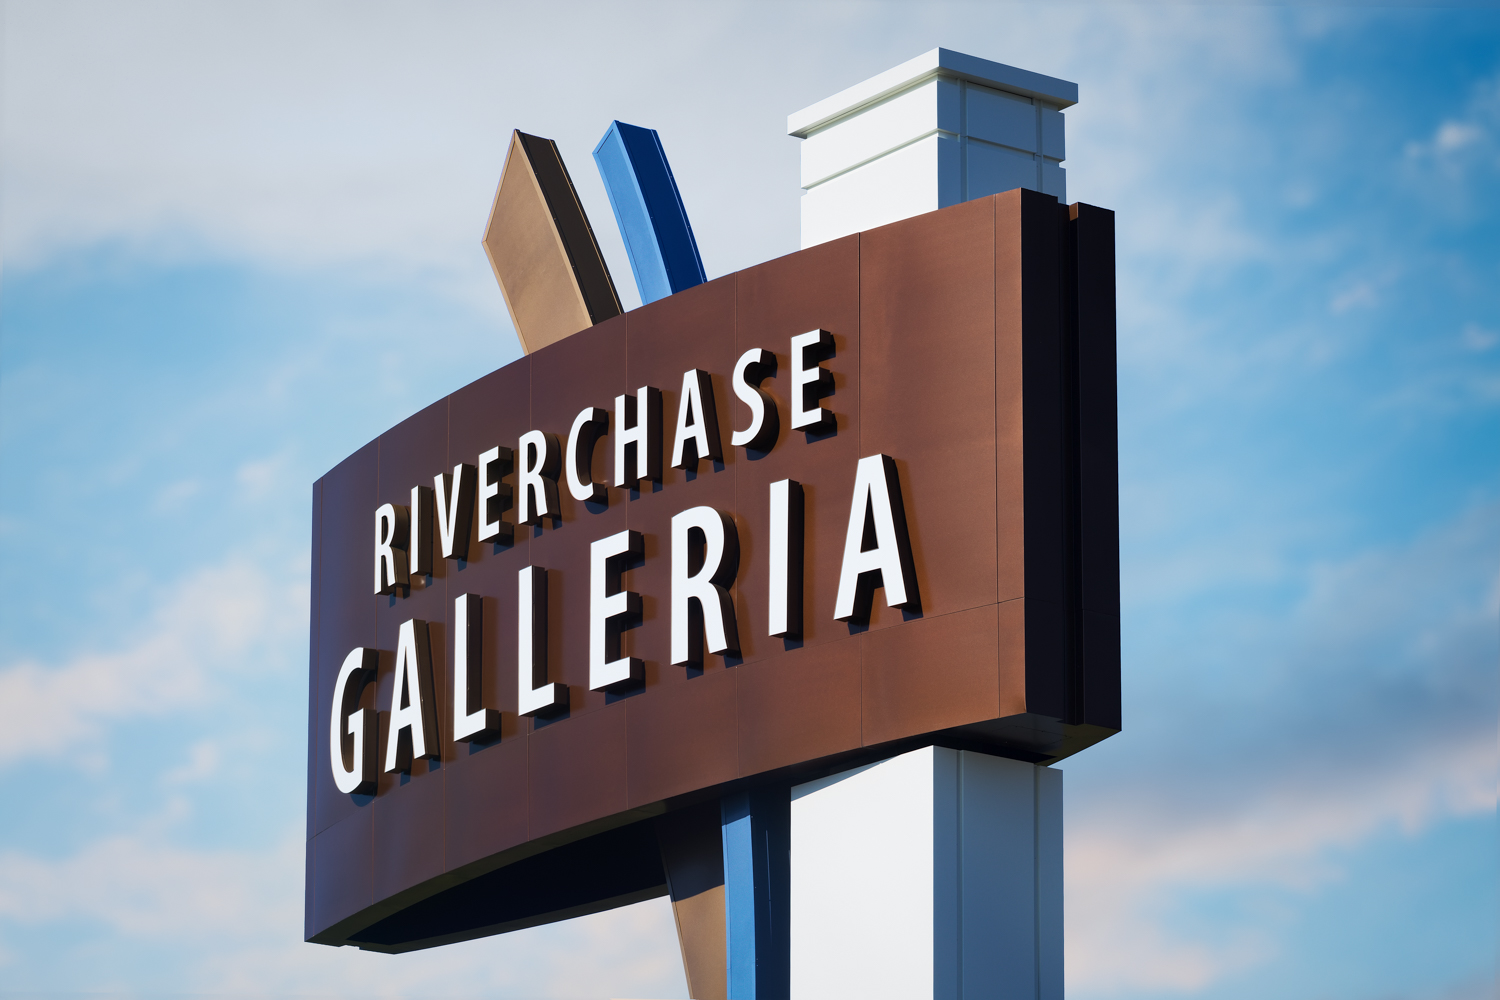 Riverchase Galleria Signs - Signs of the Riverchase Galleria Mall in Hoover Alabama for Integrated Sign and Graphic